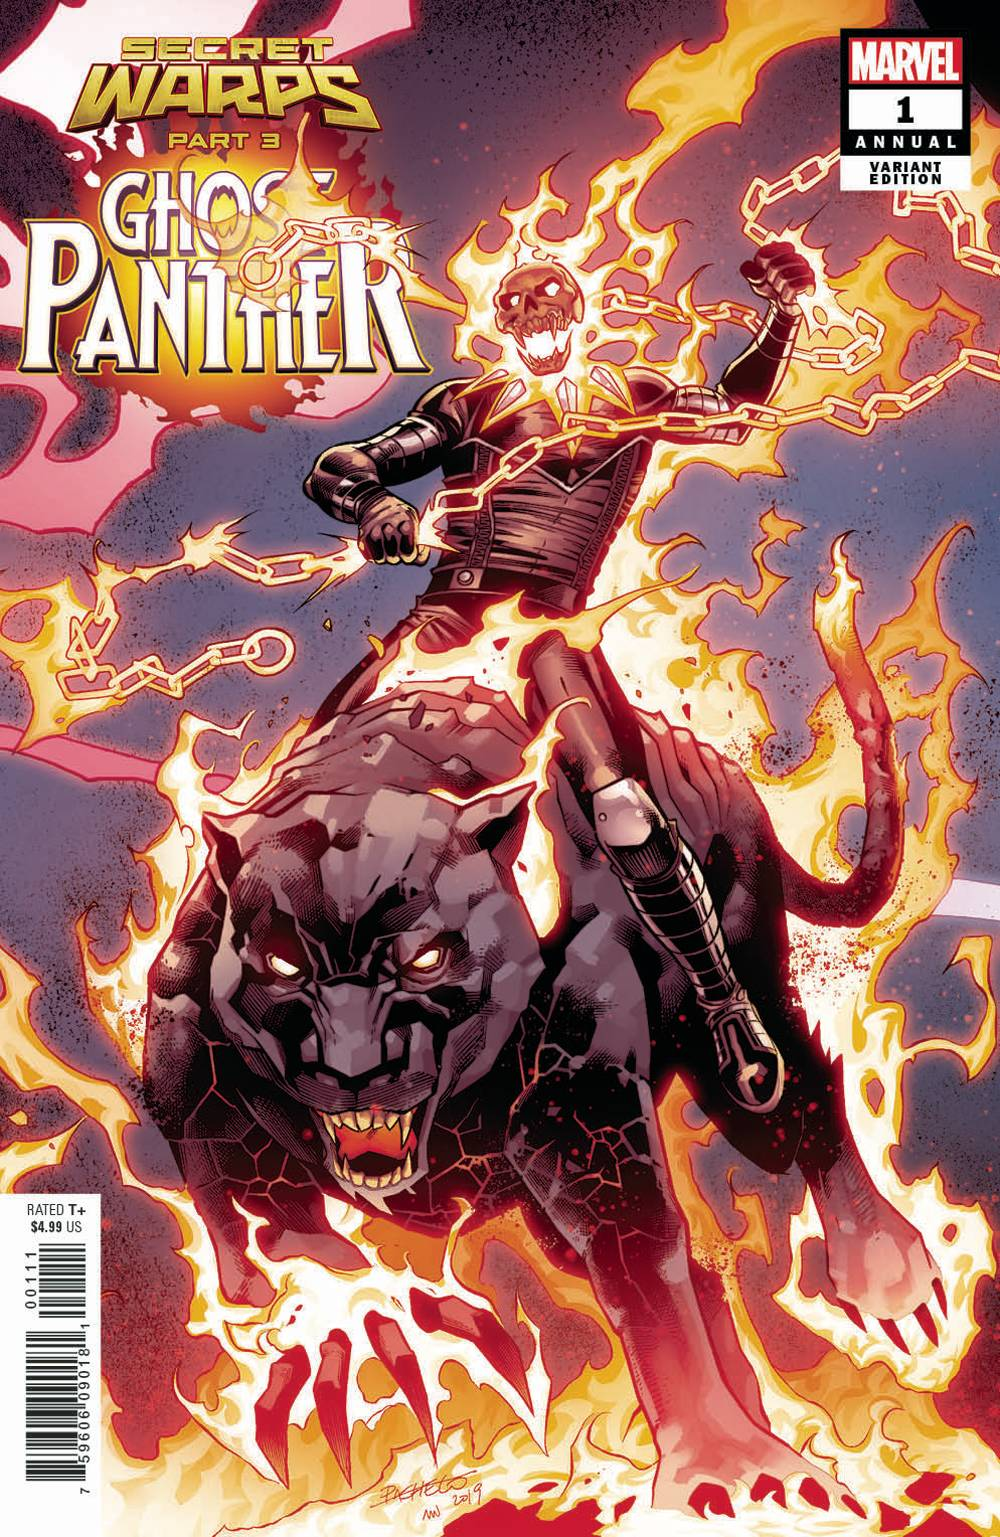 SECRET WARPS GHOST PANTHER ANNUAL 1 PACHECO CONNECTING VAR.jpg